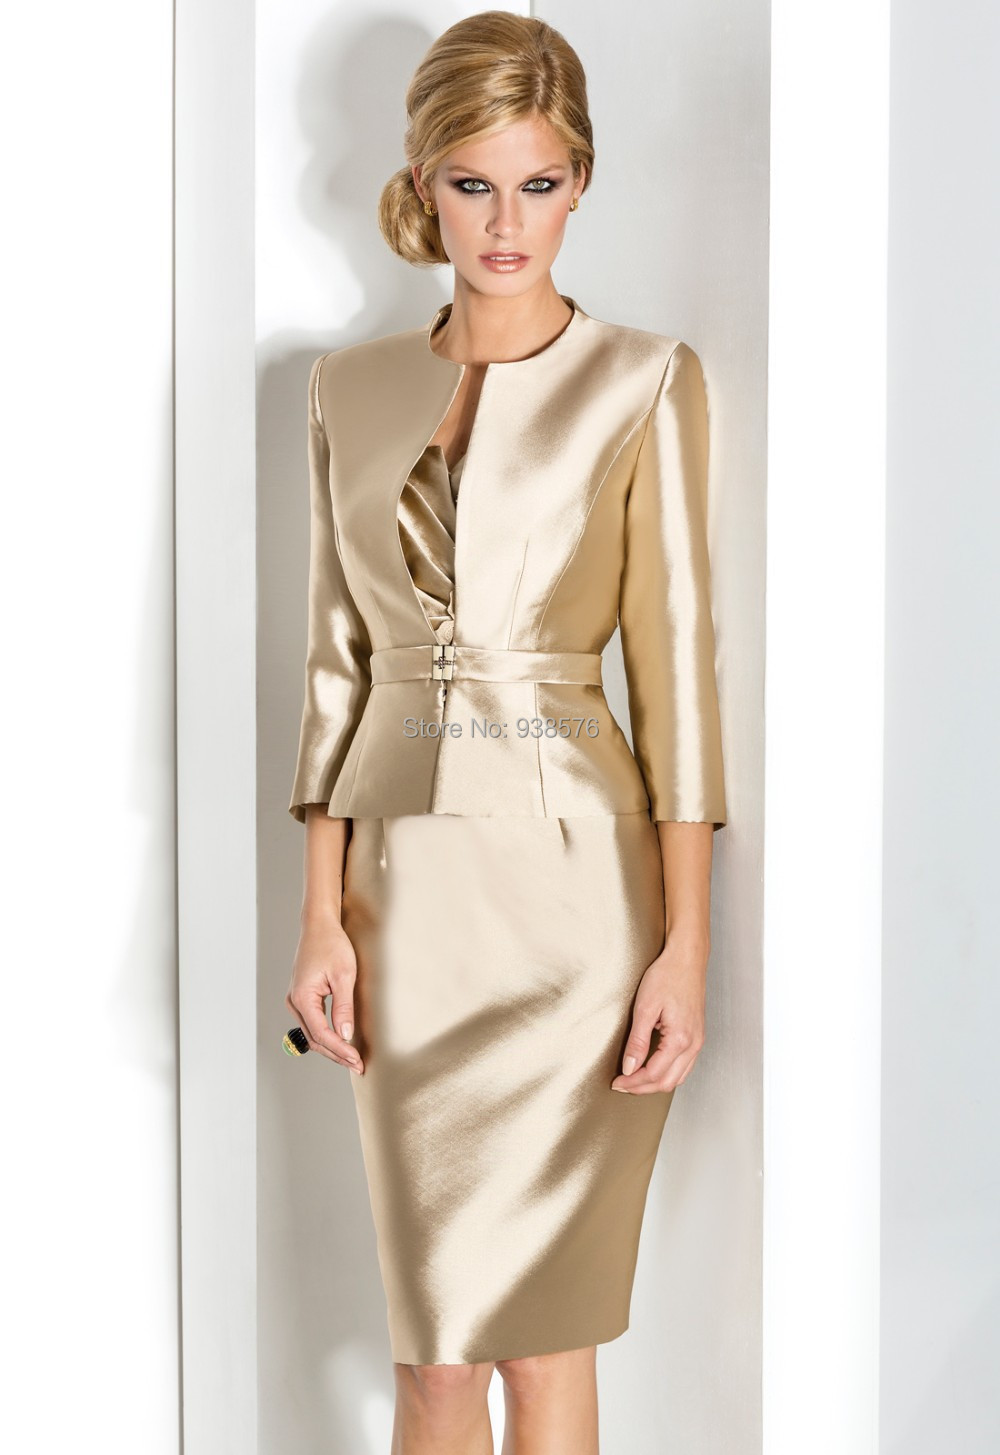 Dress And Jacket For Wedding Guest - JacketIn